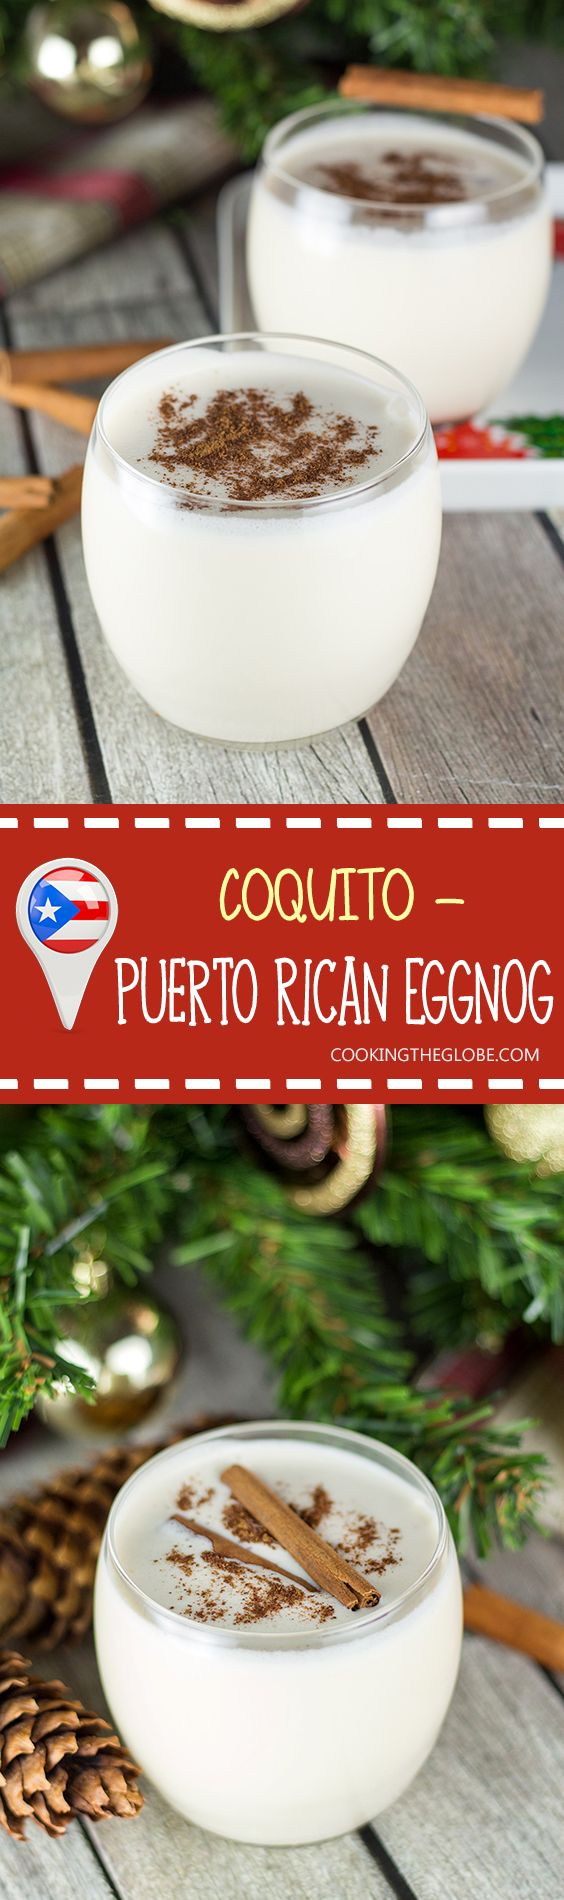 Learn how to make Coquito (Puerto Rican Eggnog) at home and make your Christmas or any other holiday unforgettable. Rich, creamy, boozy! | cookingtheglobe.com